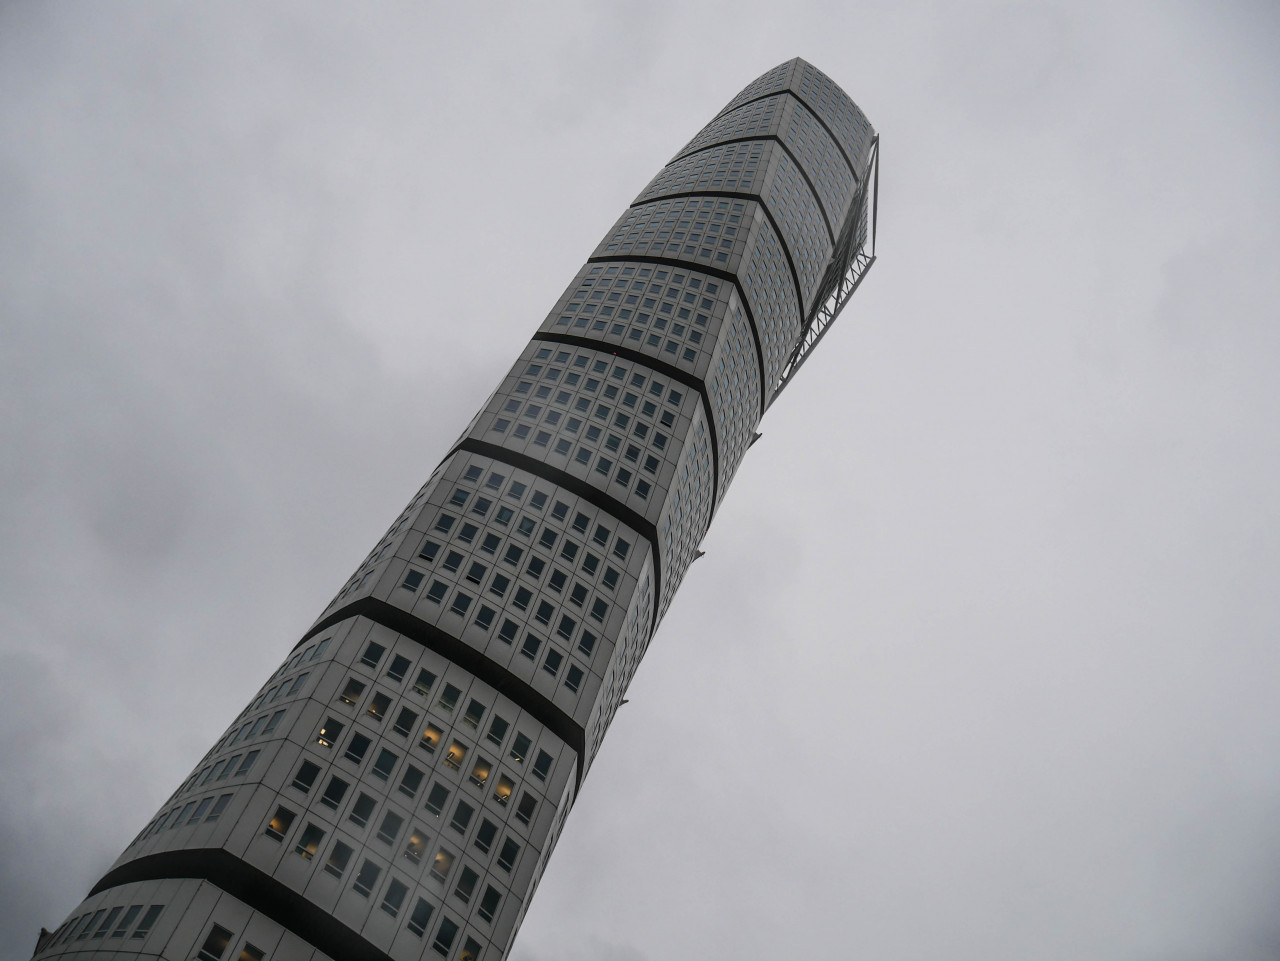 ...the famous Turning Torso, the tallest building in Scandinavia (190 metres).